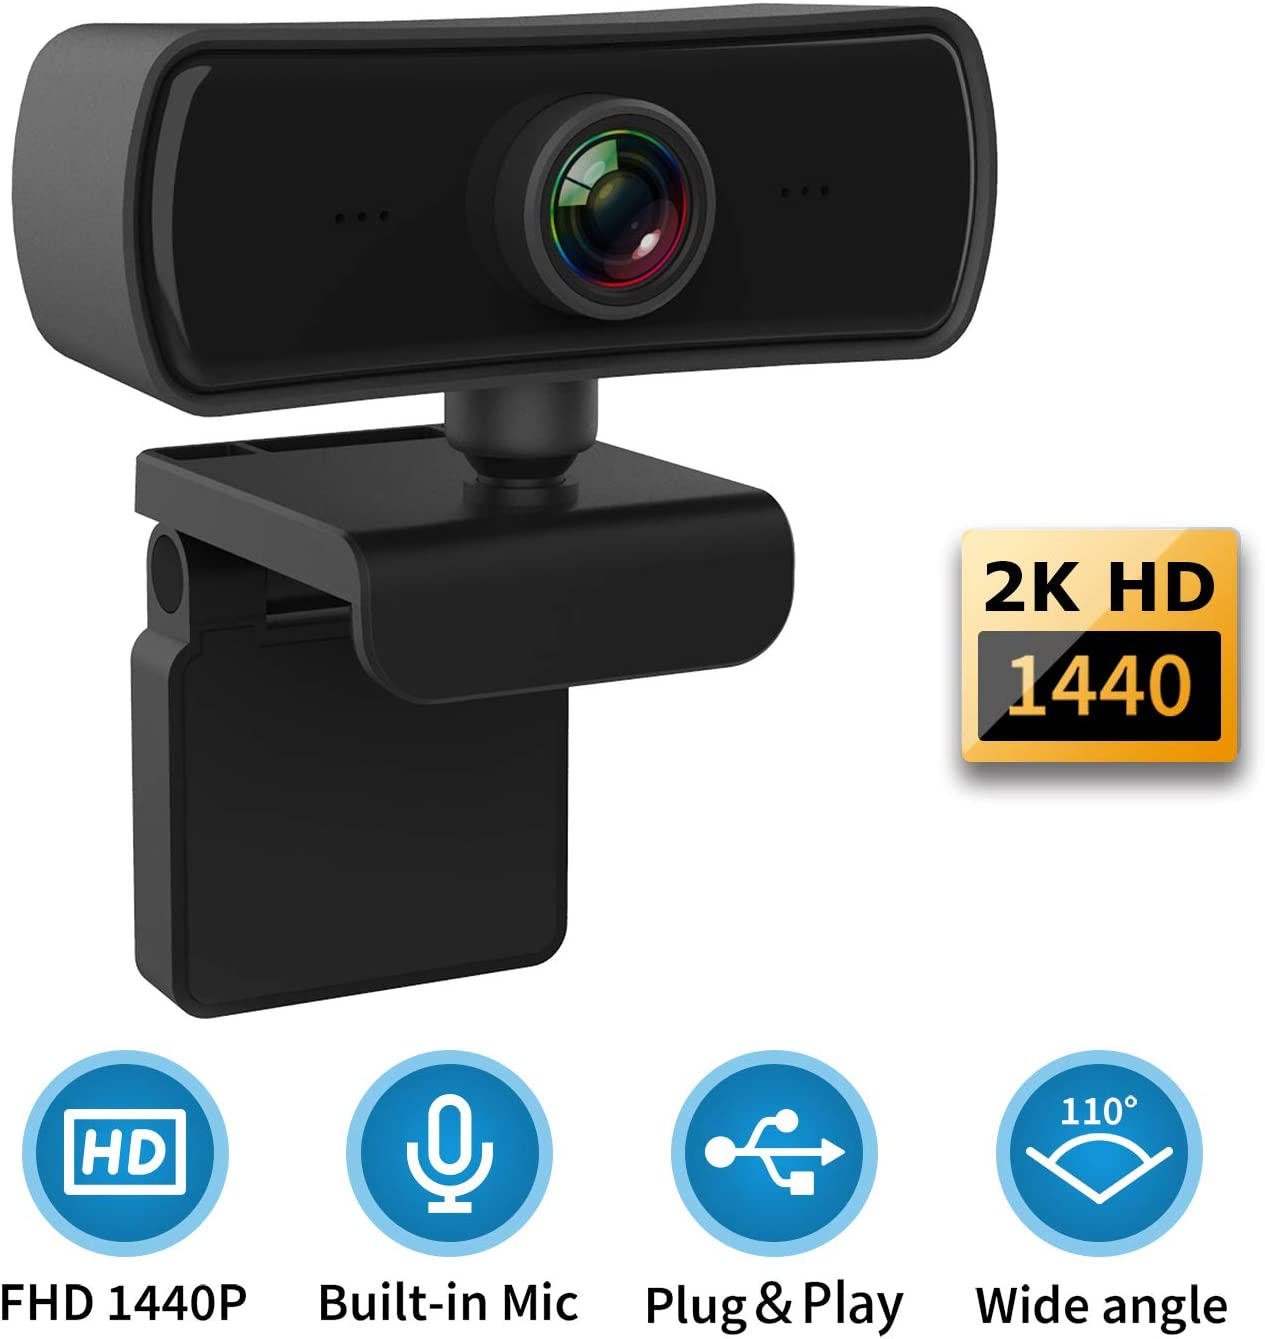 1440P HD Webcam with Microphone, USB 2.0 Desktop Laptop Computer Web Camera with 4G Auto Light Correction, Plug and Play, for Windows Mac OS, Vista,Linux,for Video Streaming, Gaming, Online Classes